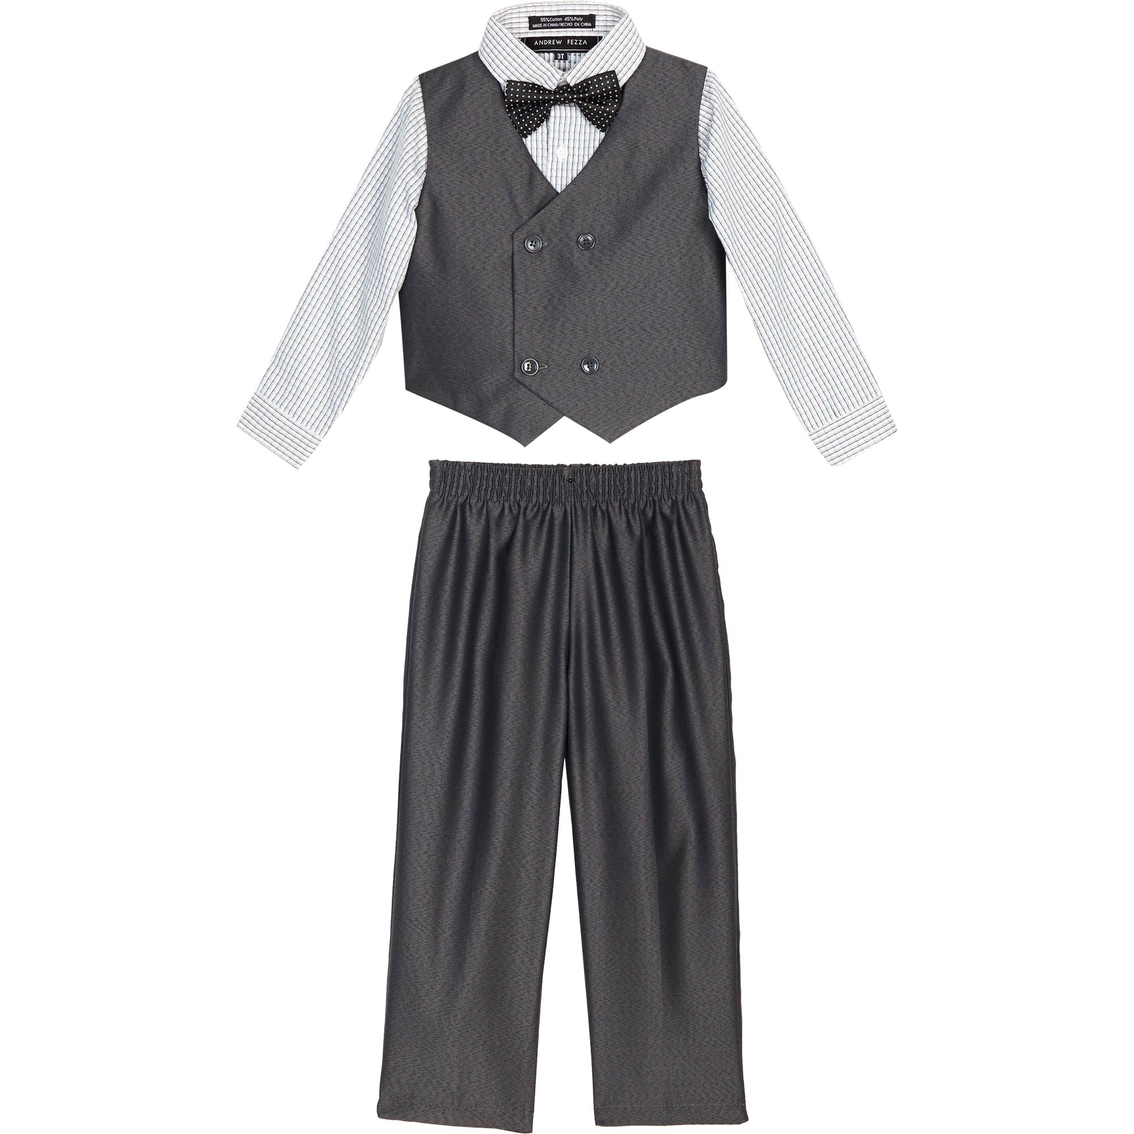 7caaa83551c Andrew Fezza Infant Boys Solid 4 Pc. Vest Set With Bow Tie